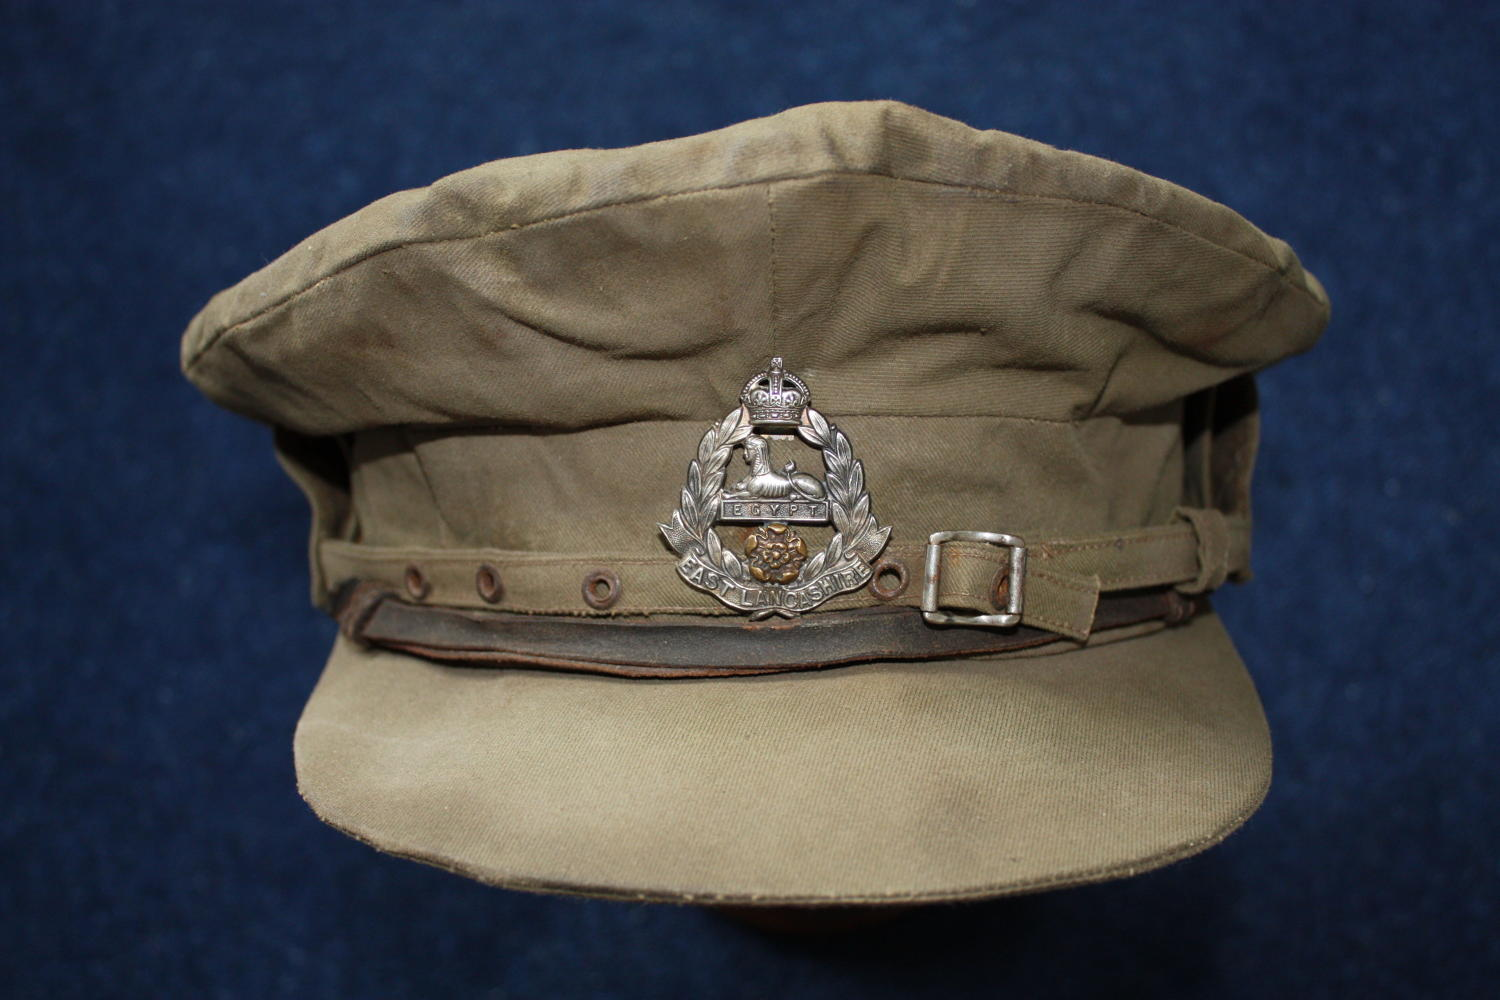 WW1 OFFICER'S TRENCH CAP: EAST LANCASHIRE REGIMENT